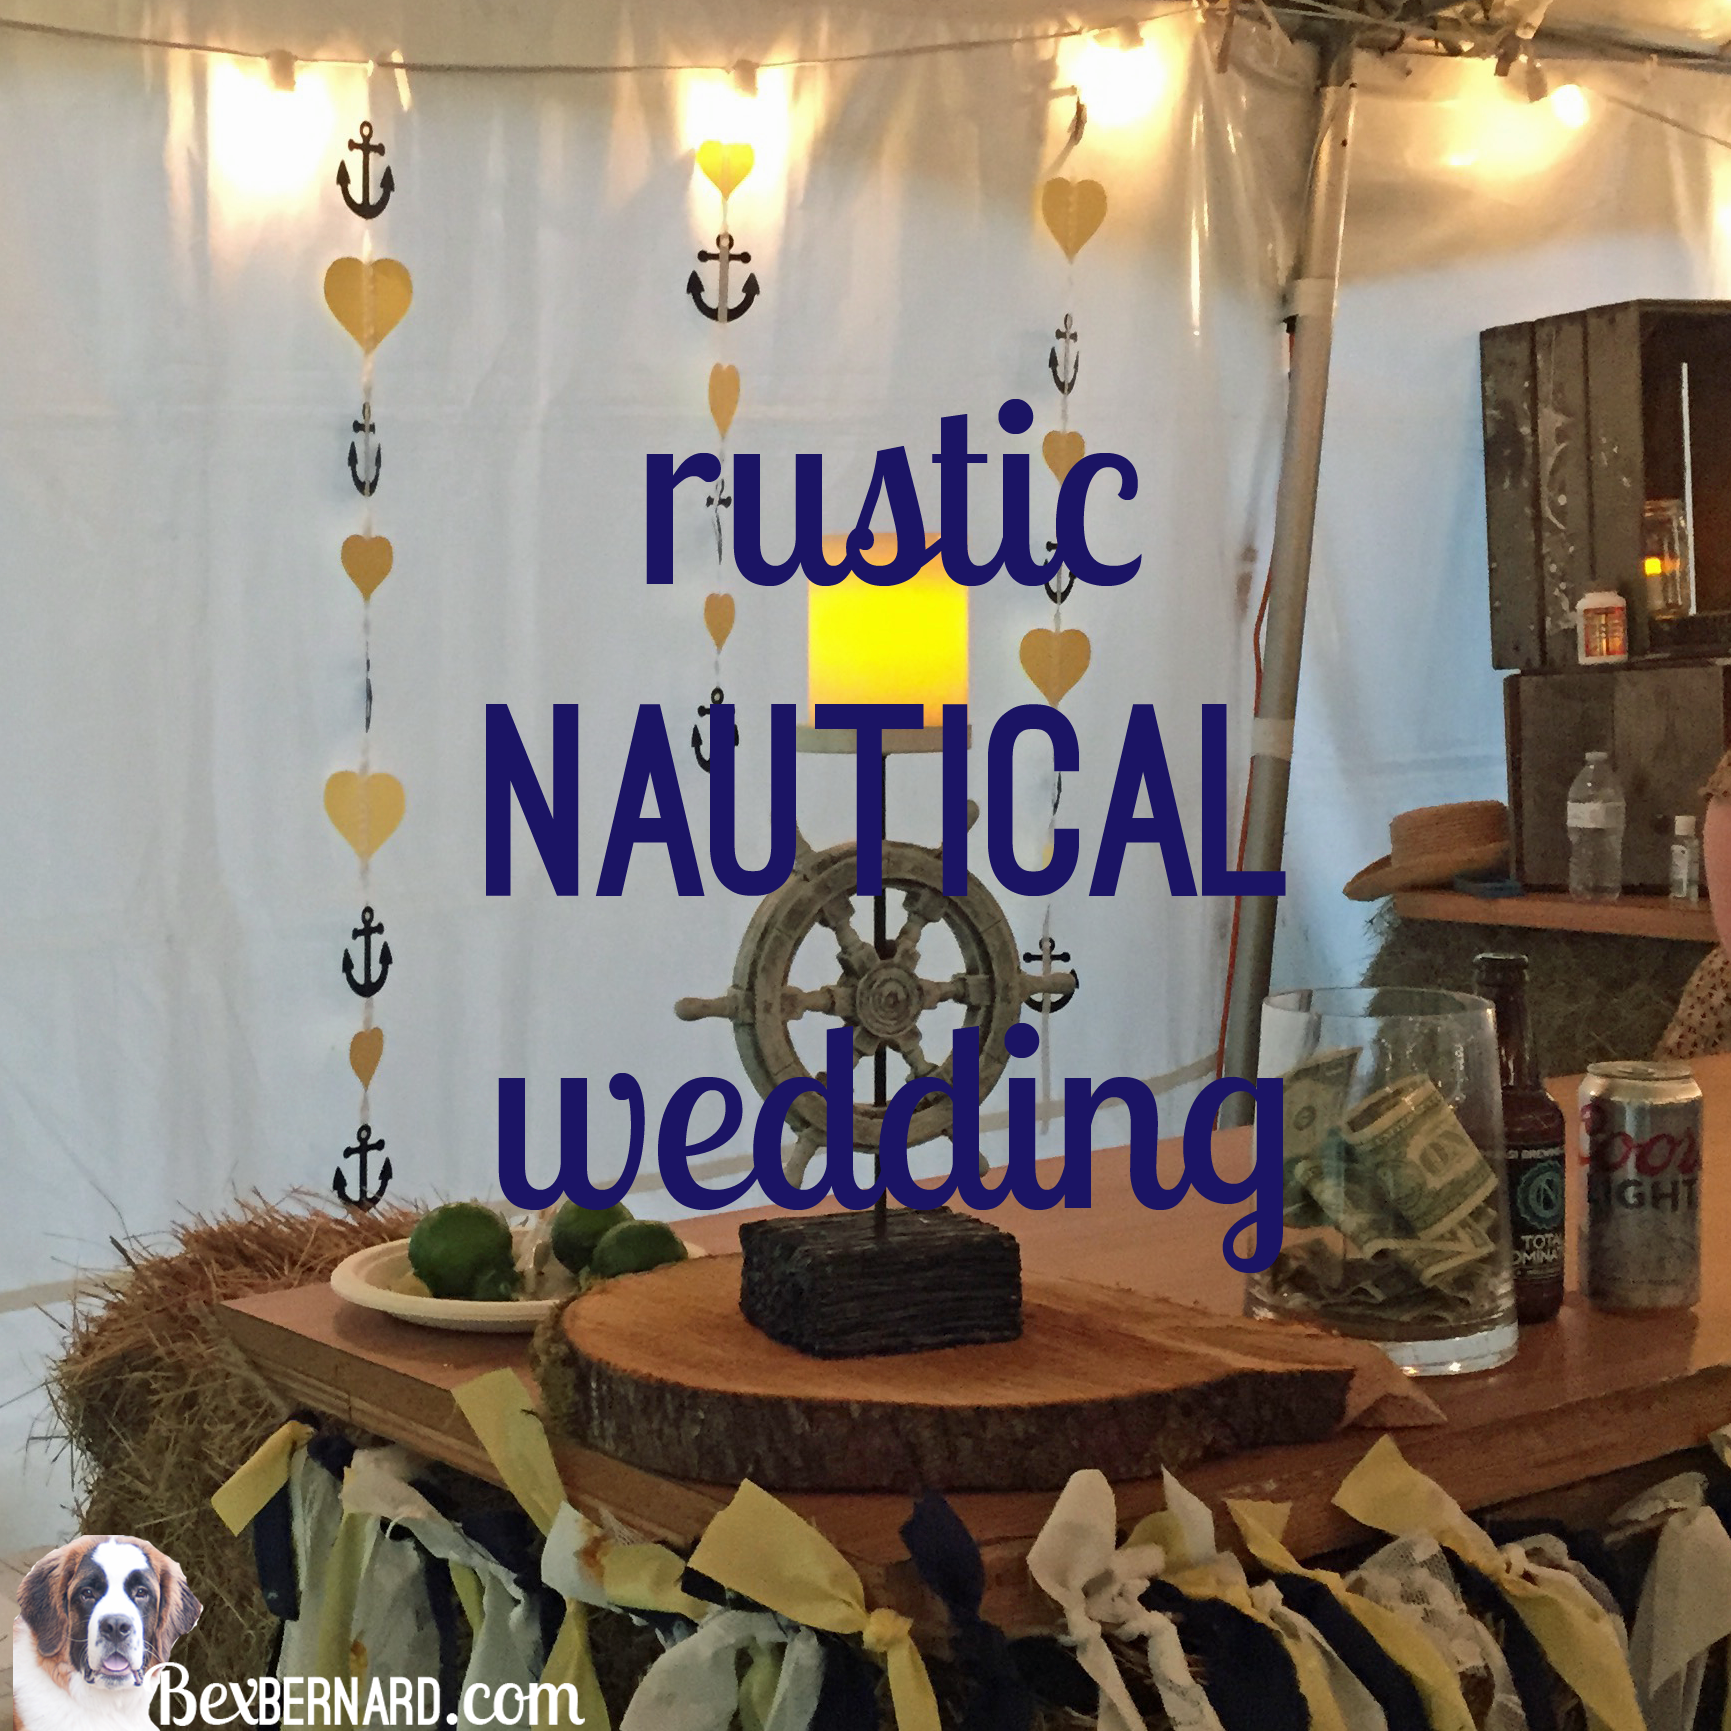 The Nautical Wedding I Would Have Had